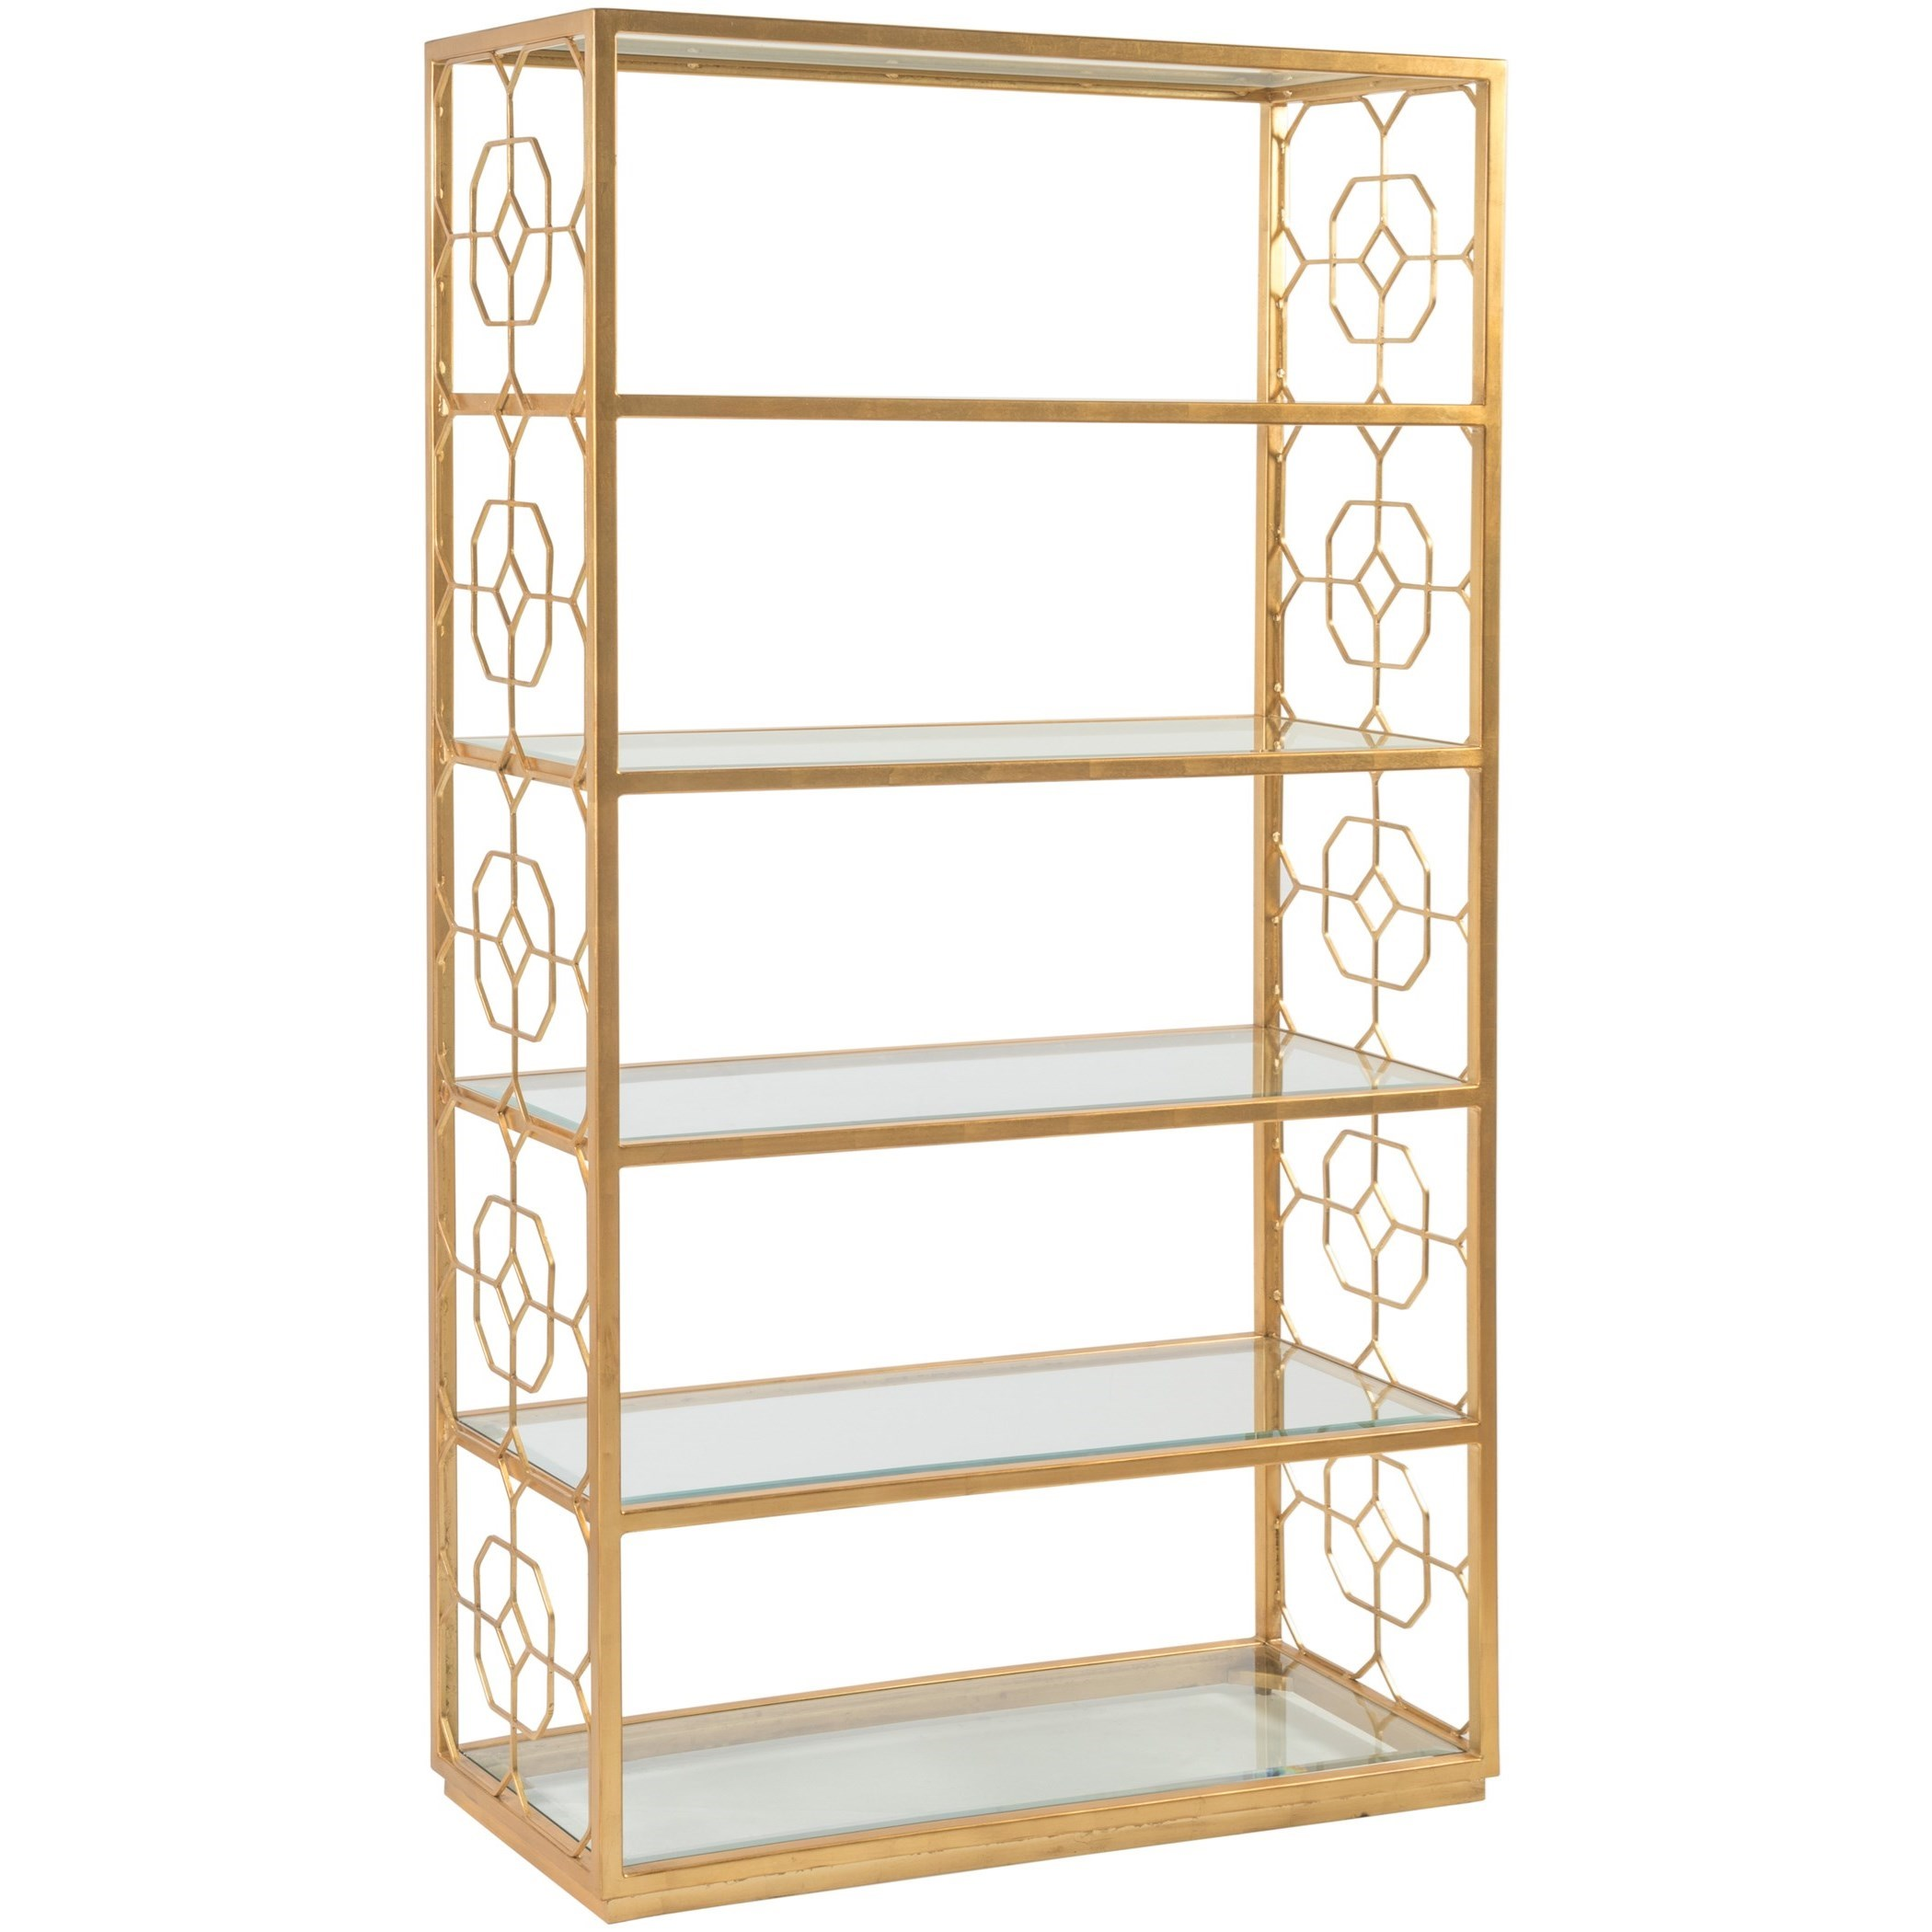 Metal Designs Honeycomb Etagere by Artistica at Alison Craig Home Furnishings